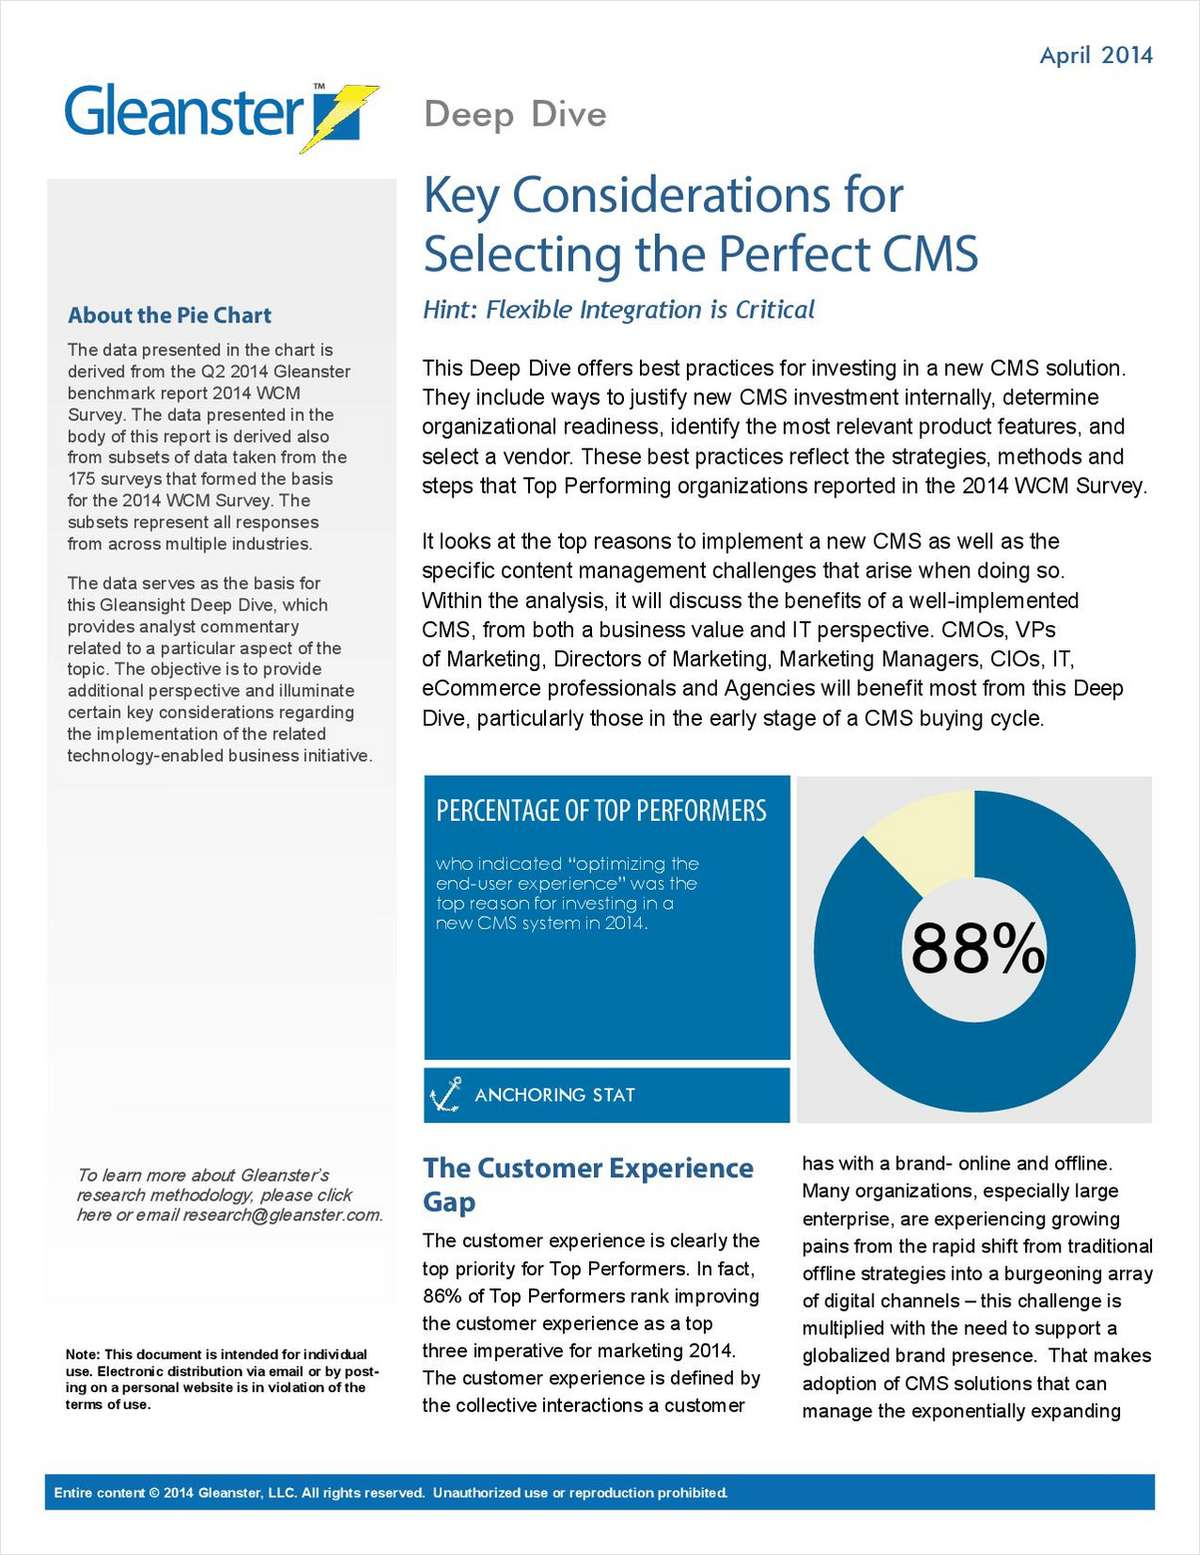 What Marketers Need to Know for Selecting the Perfect CMS